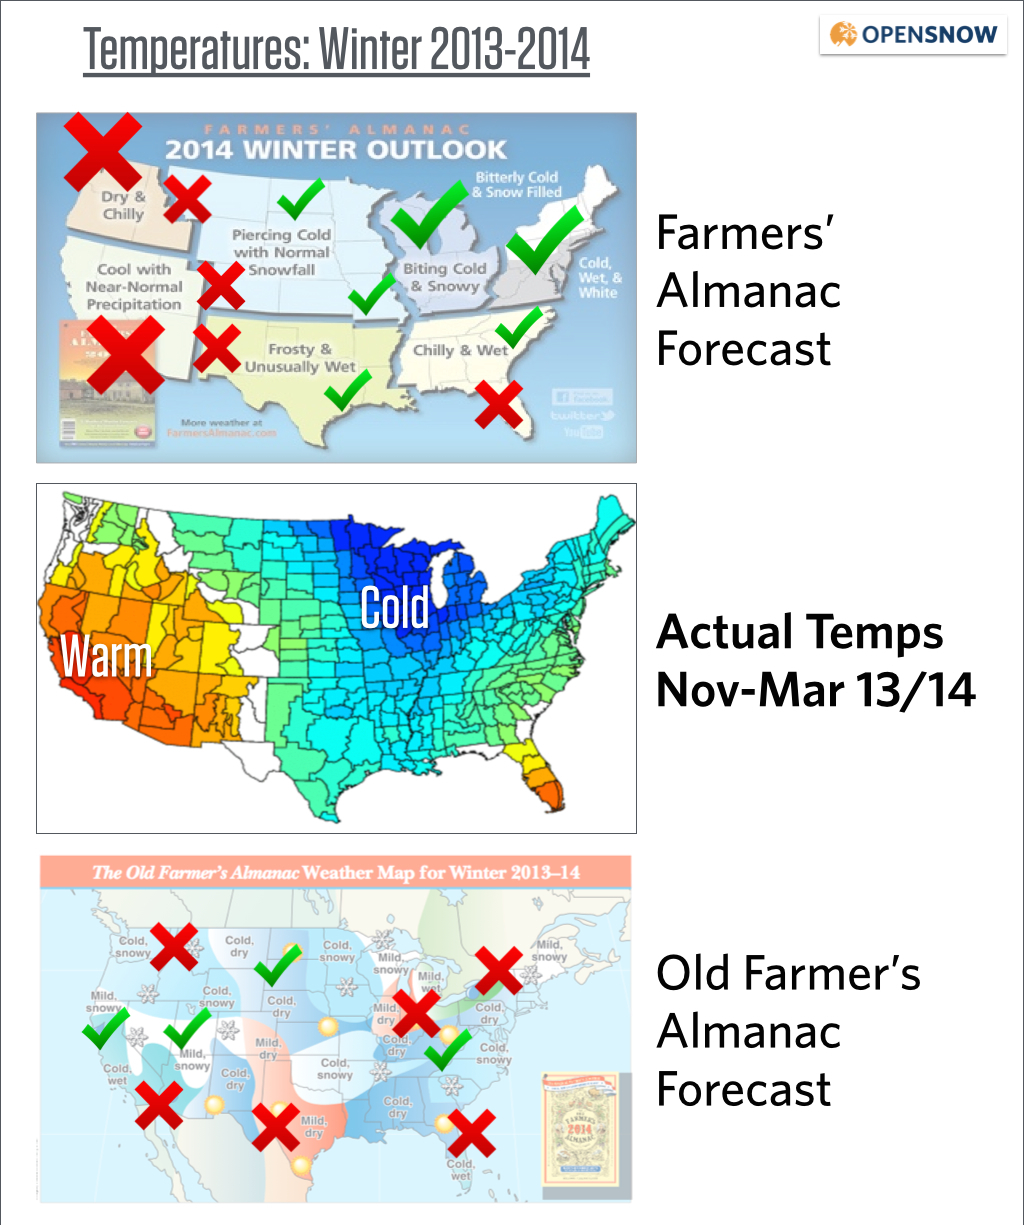 farmers almanac winter forecast accuracy